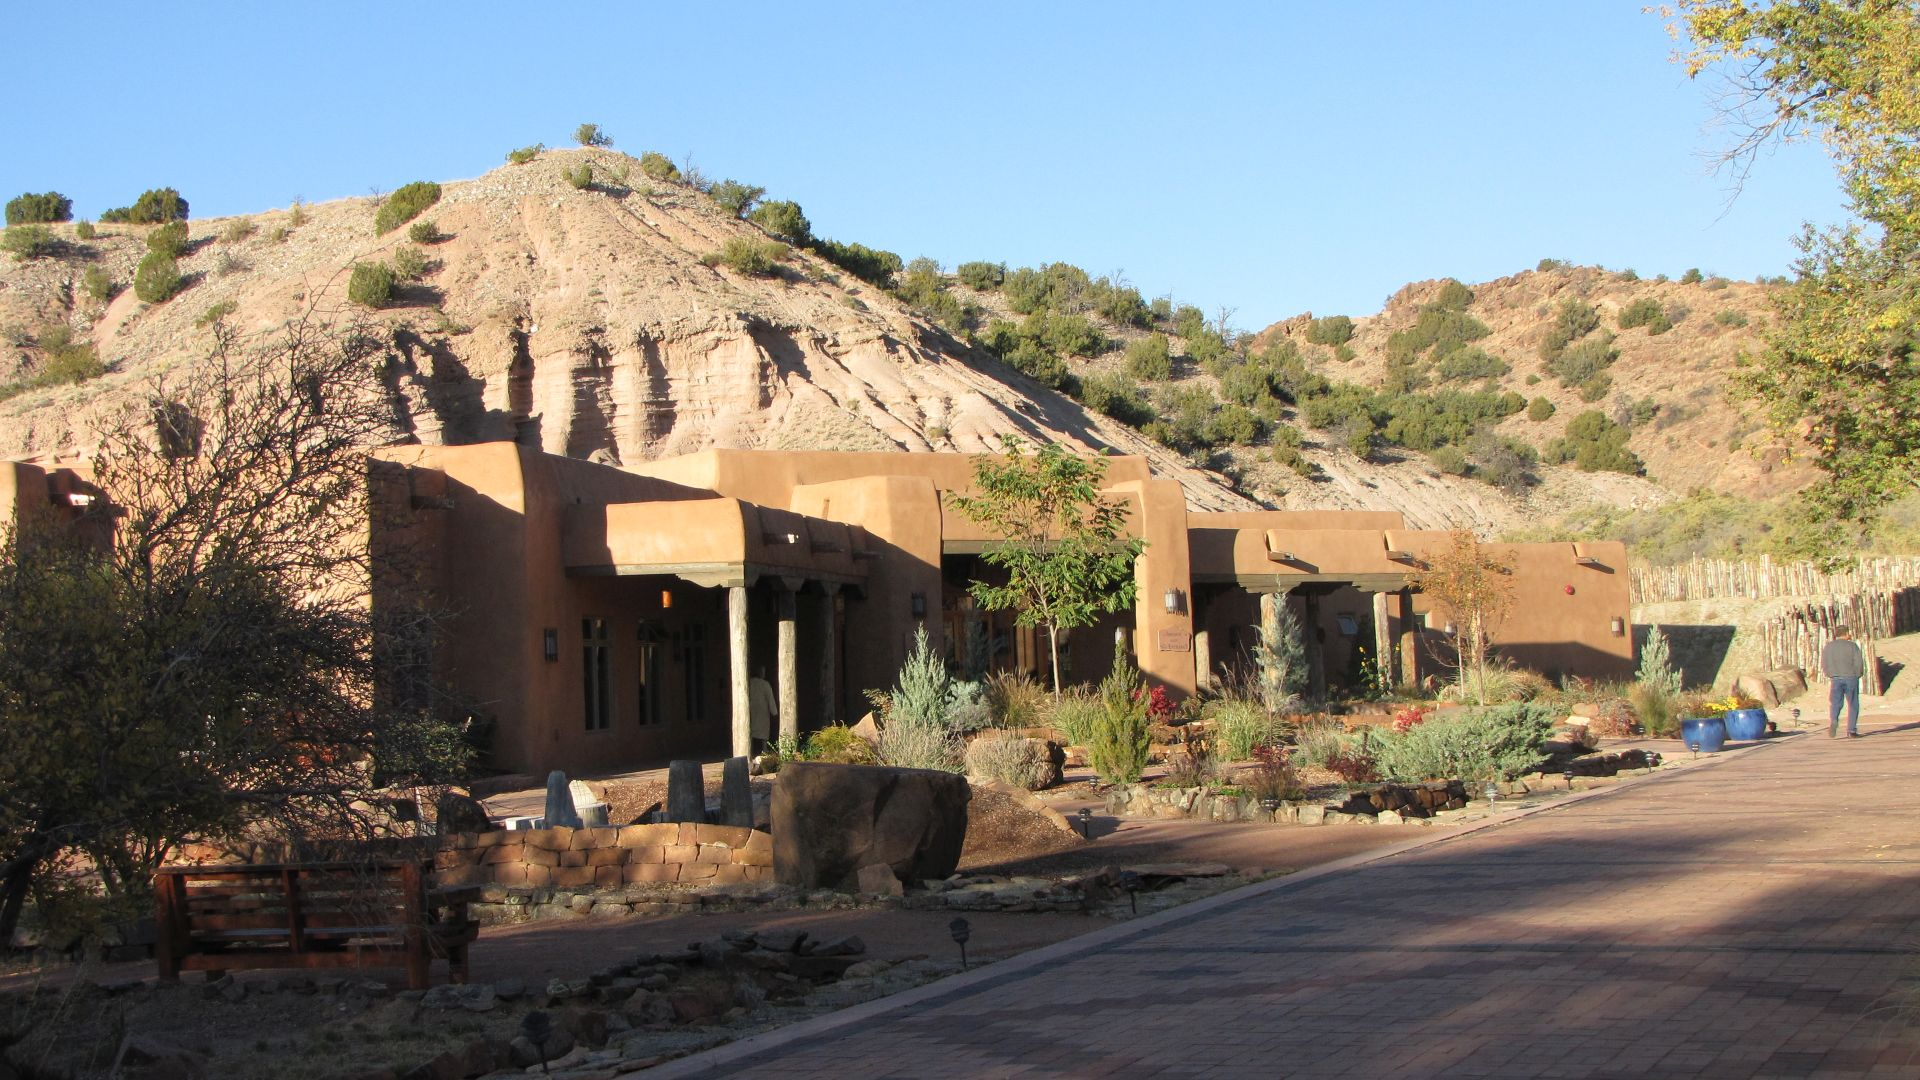 Ojo Caliente, NM, USA - plush plush hot springs resort (50% discount as I was camping so I had to try it!)